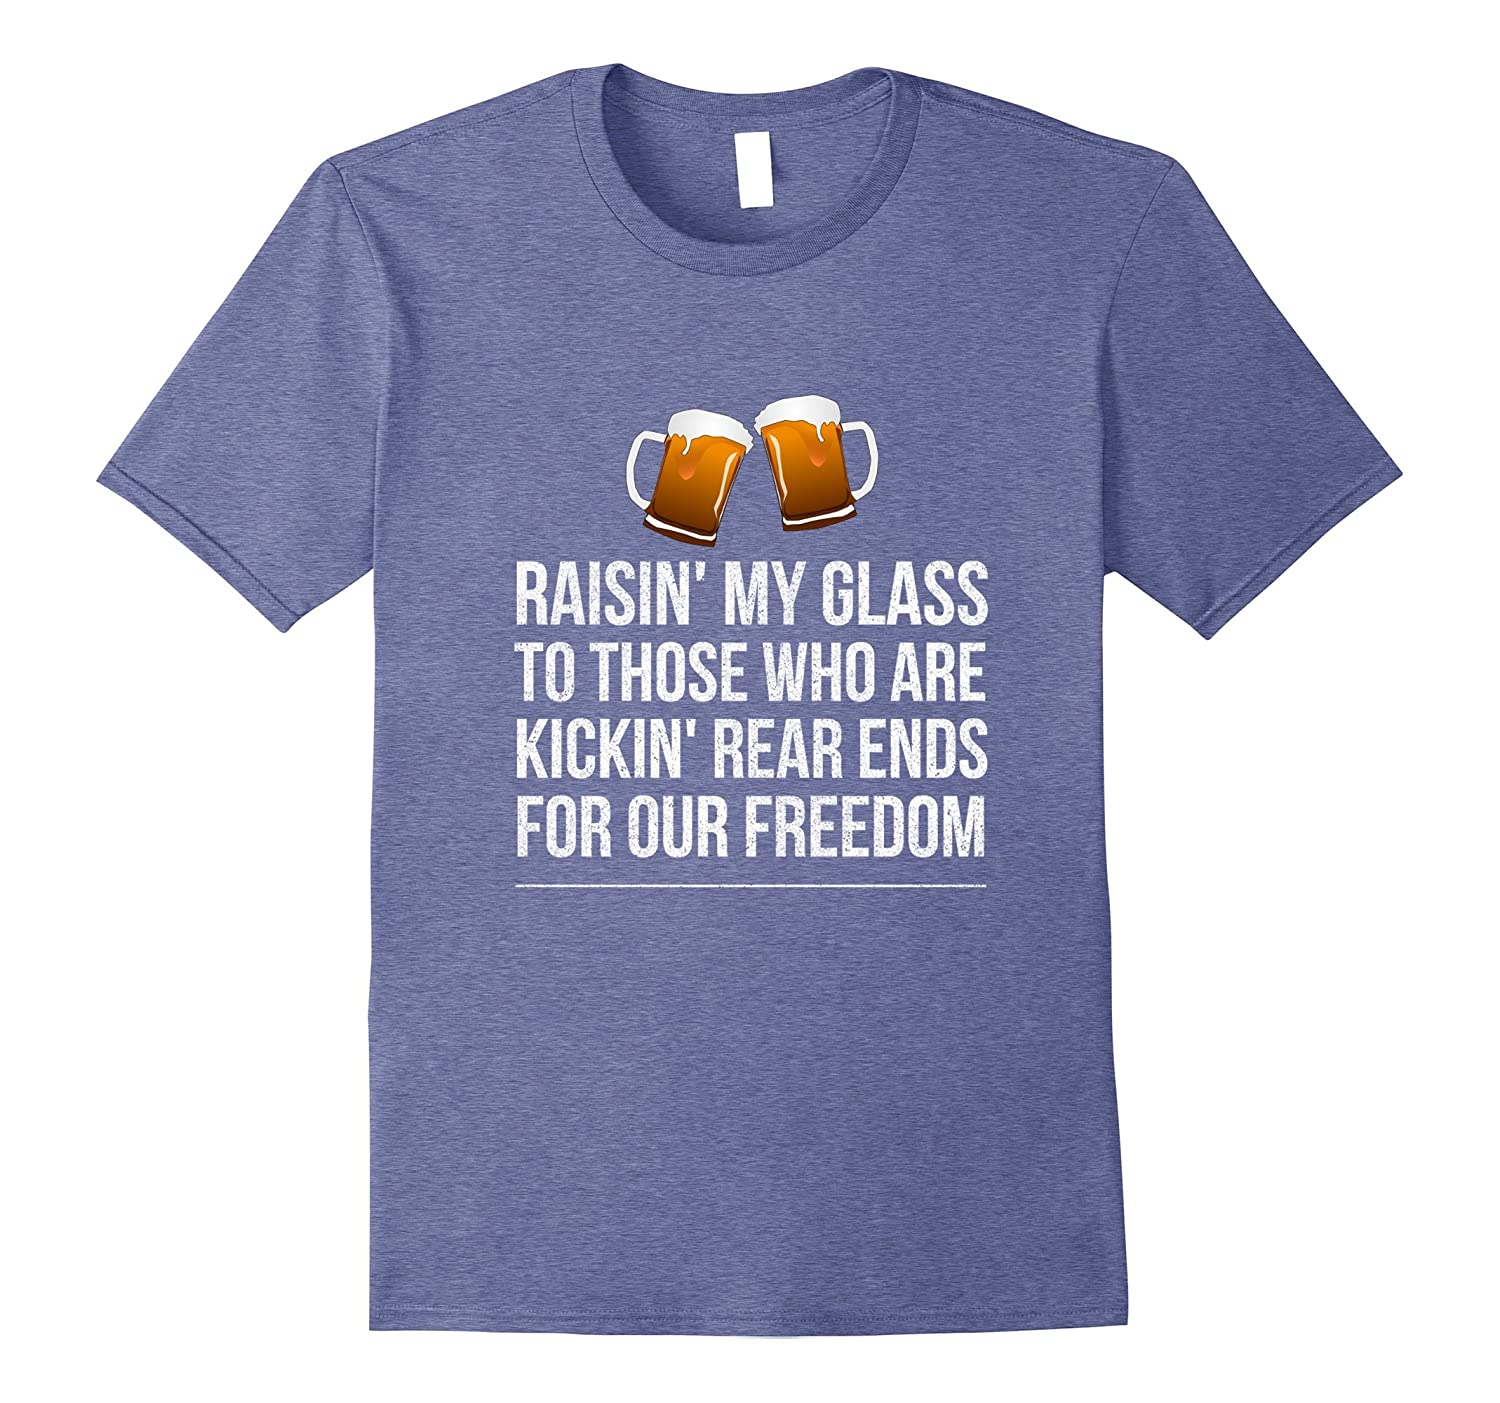 51362c29b2c6a Raisin my glass those who freedom veterans gift t-shirt-CD – Canditee